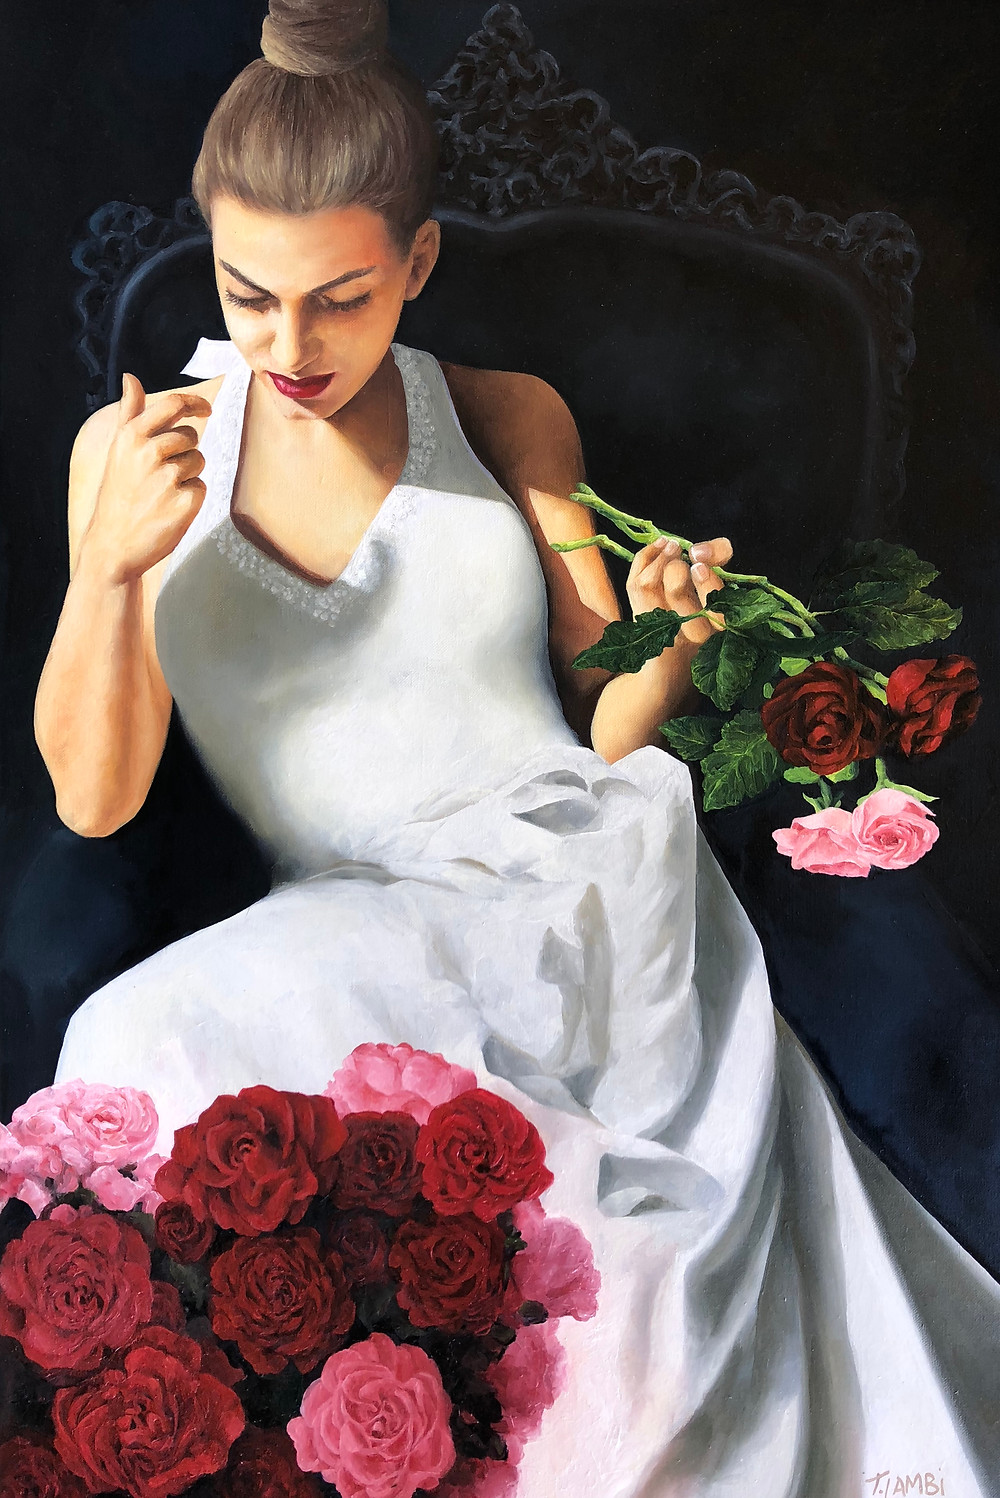 Dreams Grow Wild:  Old world charm and romance abound in this piece inspired by roses from my garden. My daughter models for me so a lot of love goes into my figurative painting.